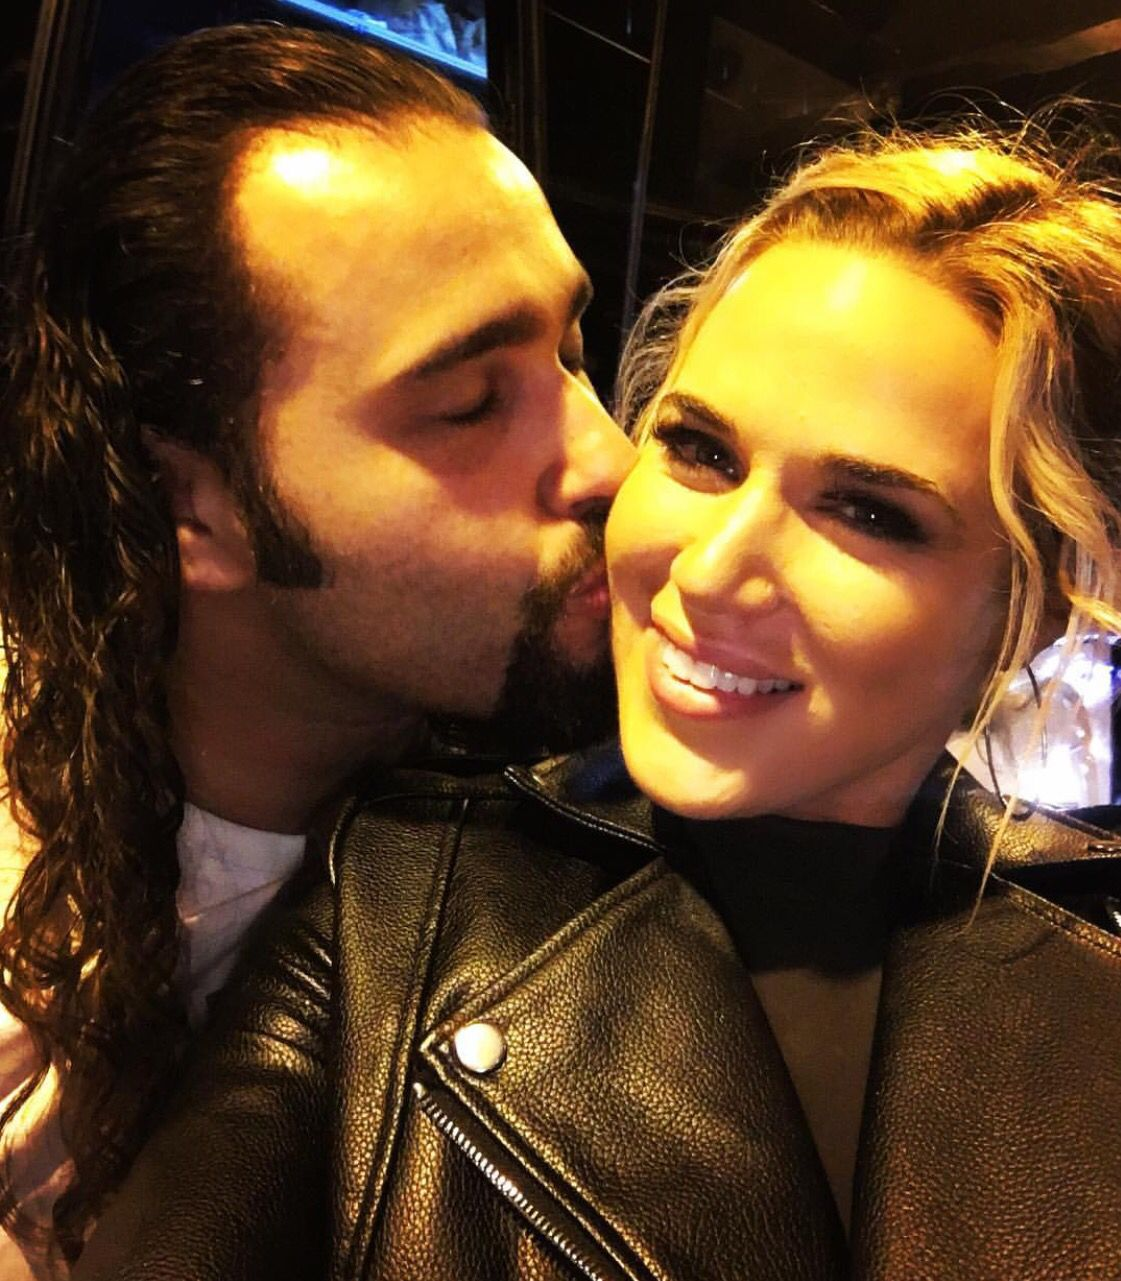 Lana And Rusev Will Reportedly Be Breaking Up